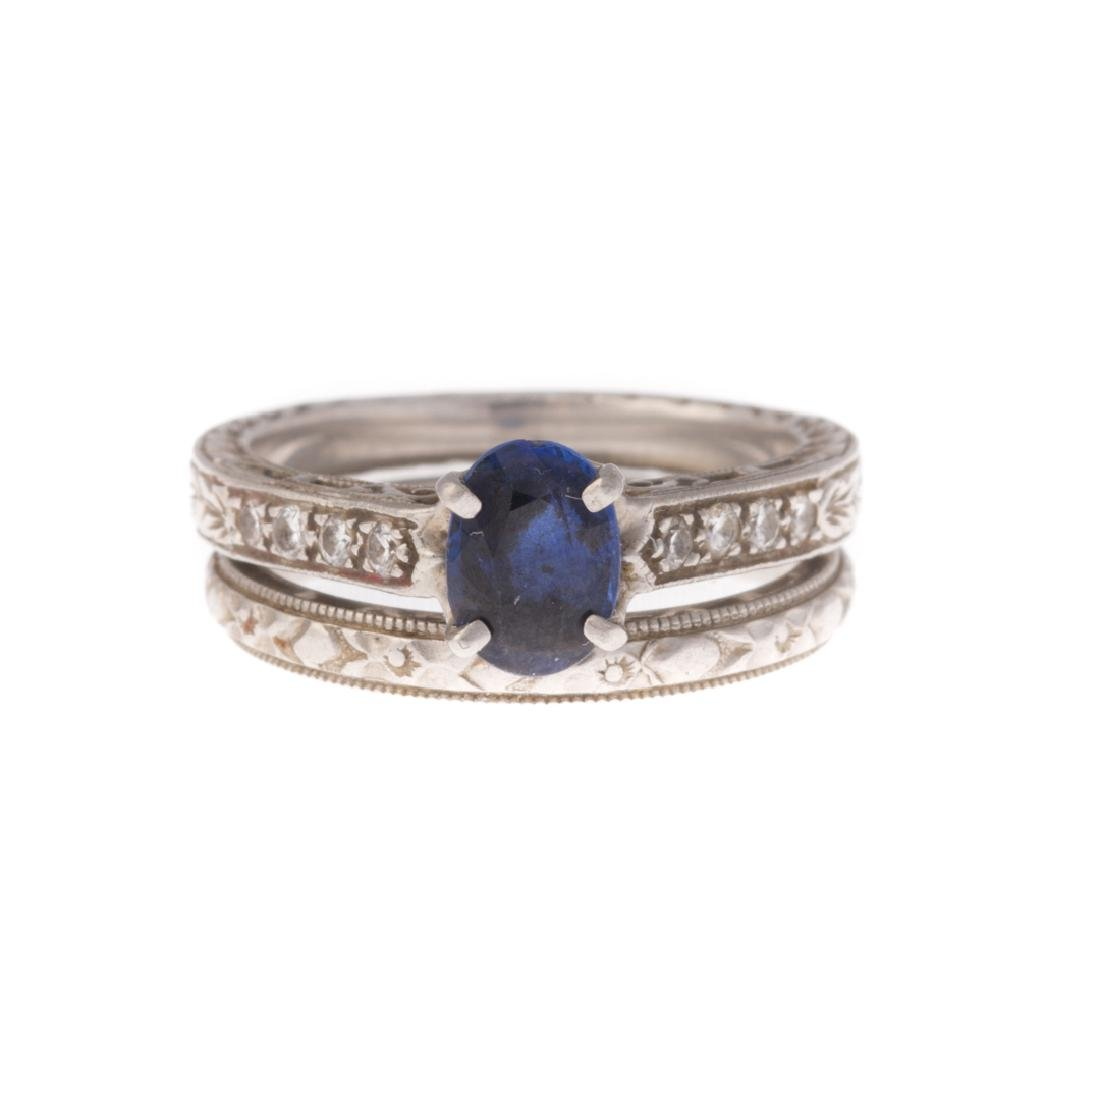 A Platinum Sapphire Engagement Ring with Band